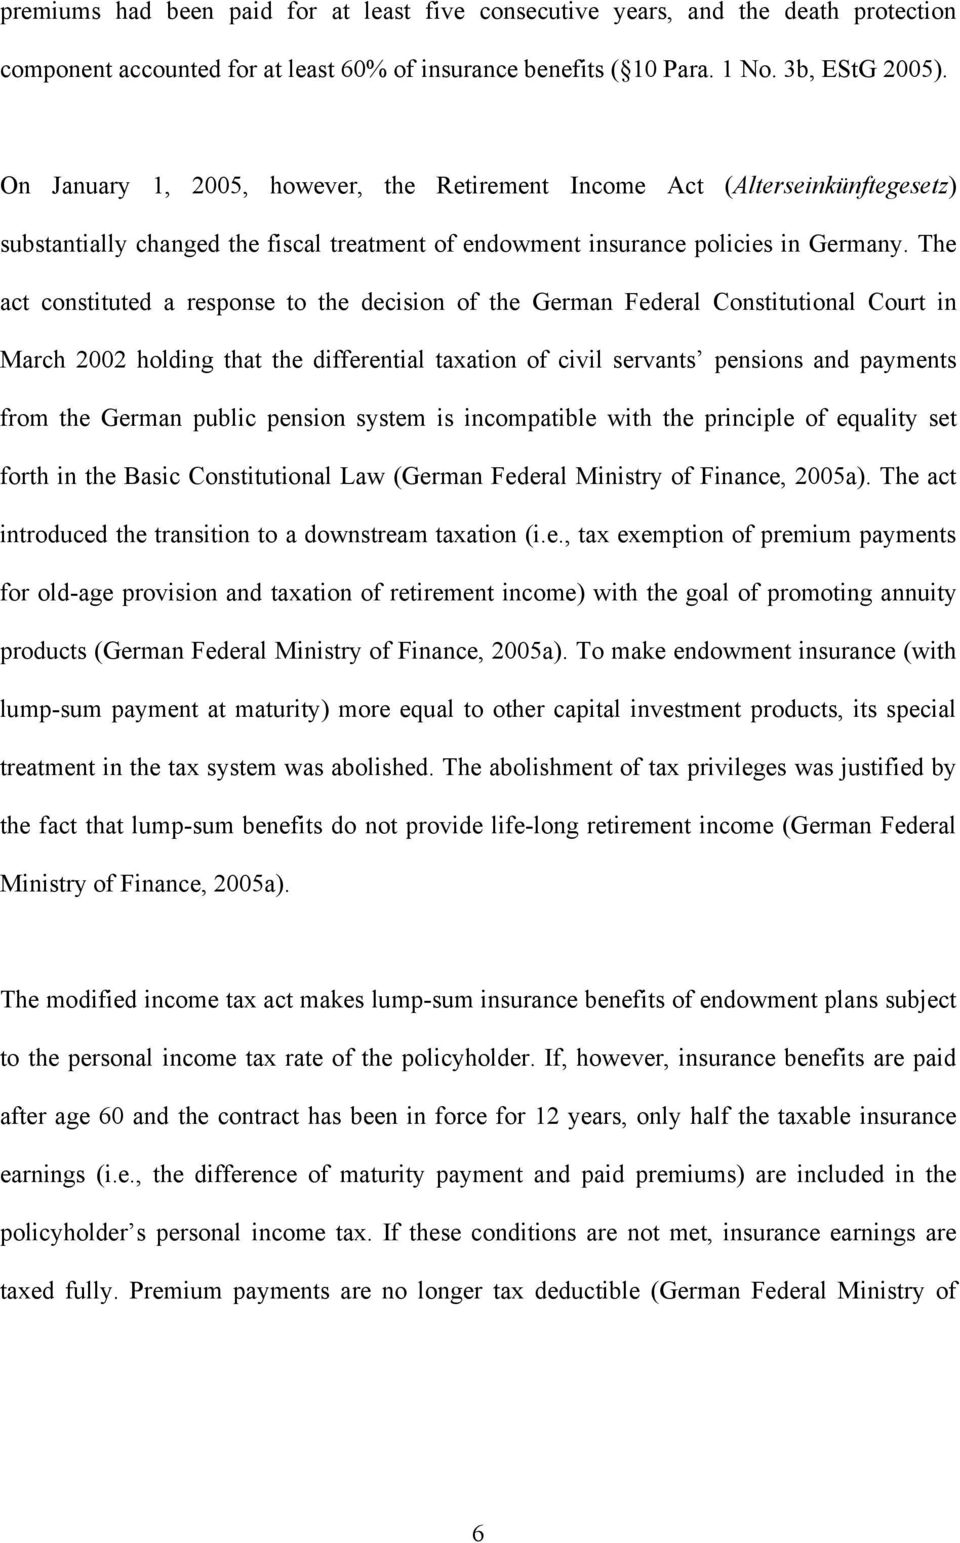 The act constituted a response to the decision of the German Federal Constitutional Court in March 2002 holding that the differential taxation of civil servants pensions and payments from the German